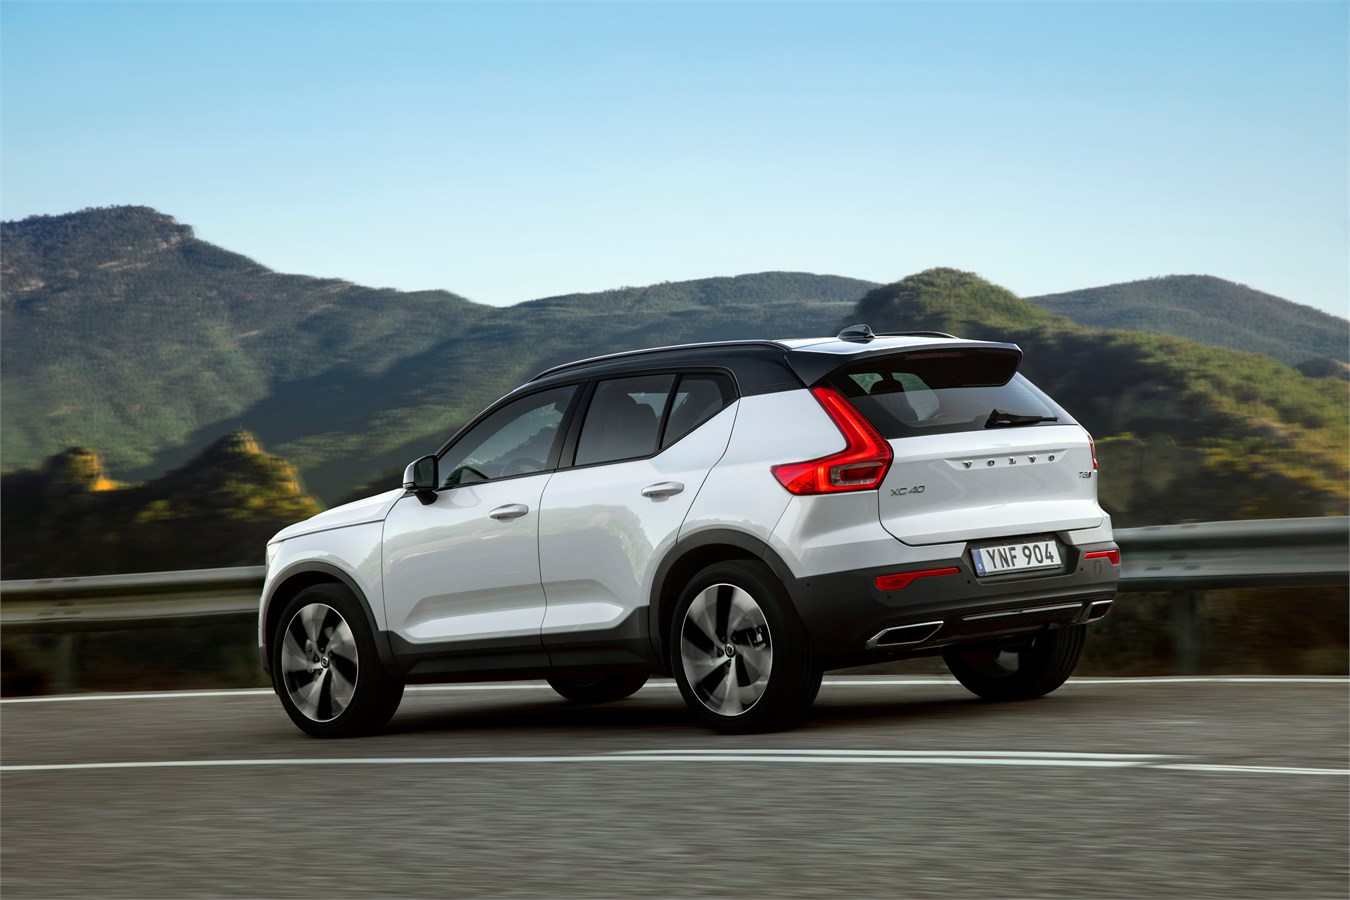 The New Volvo Xc40 Makes Its Cinematic Debut In Warner Bros Pictures And Mgm S Upcoming Motion